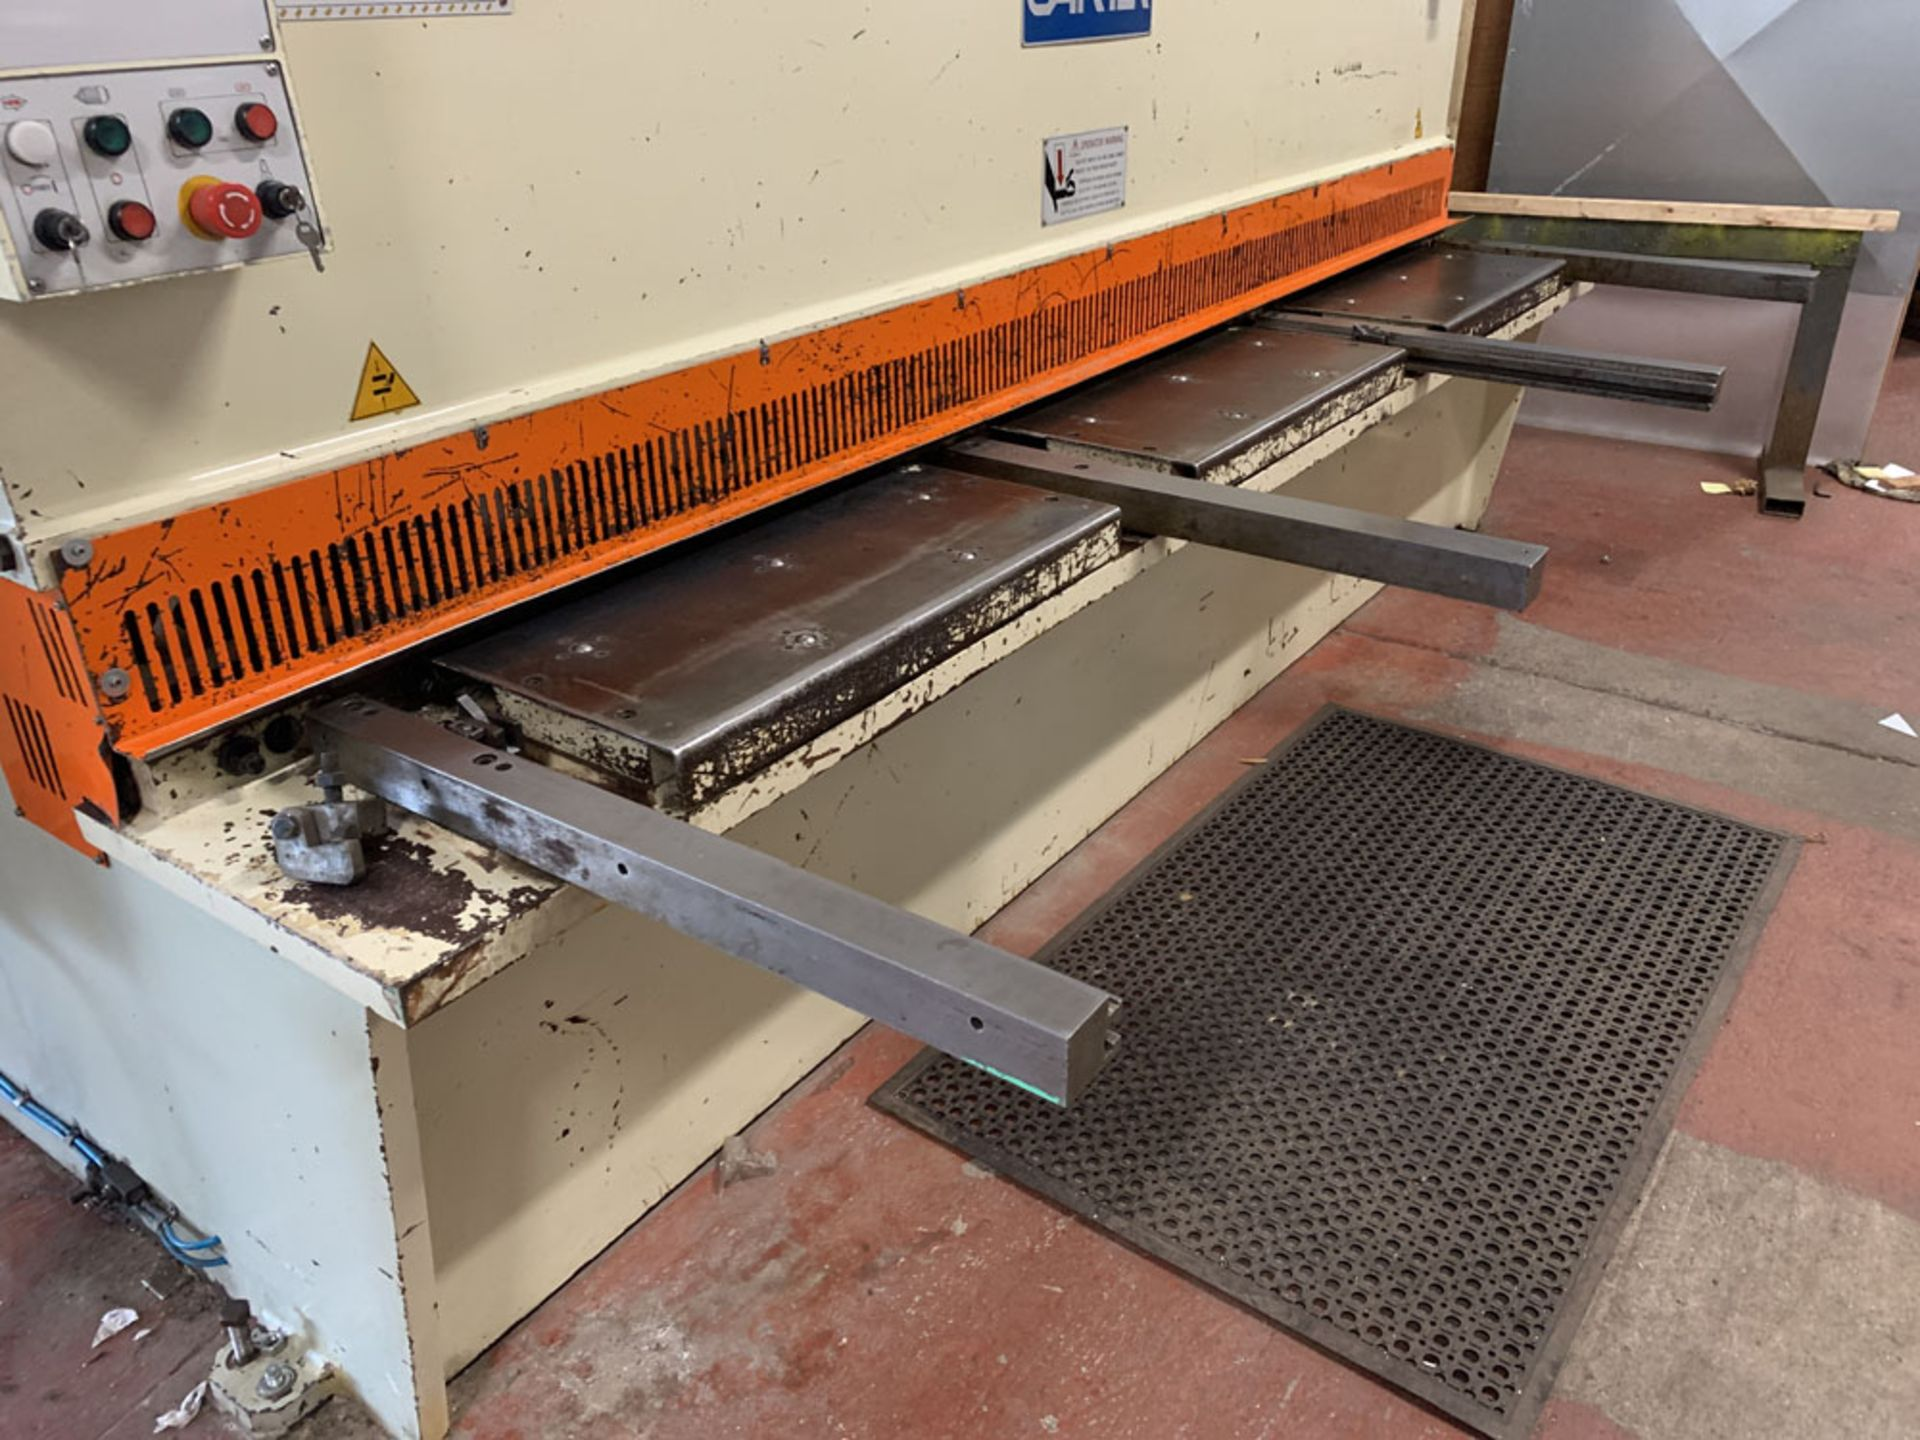 Lot 7 - CARTER Model QC12 K-6 x 3200 Hydraulic Sheet Metal Guillotine.